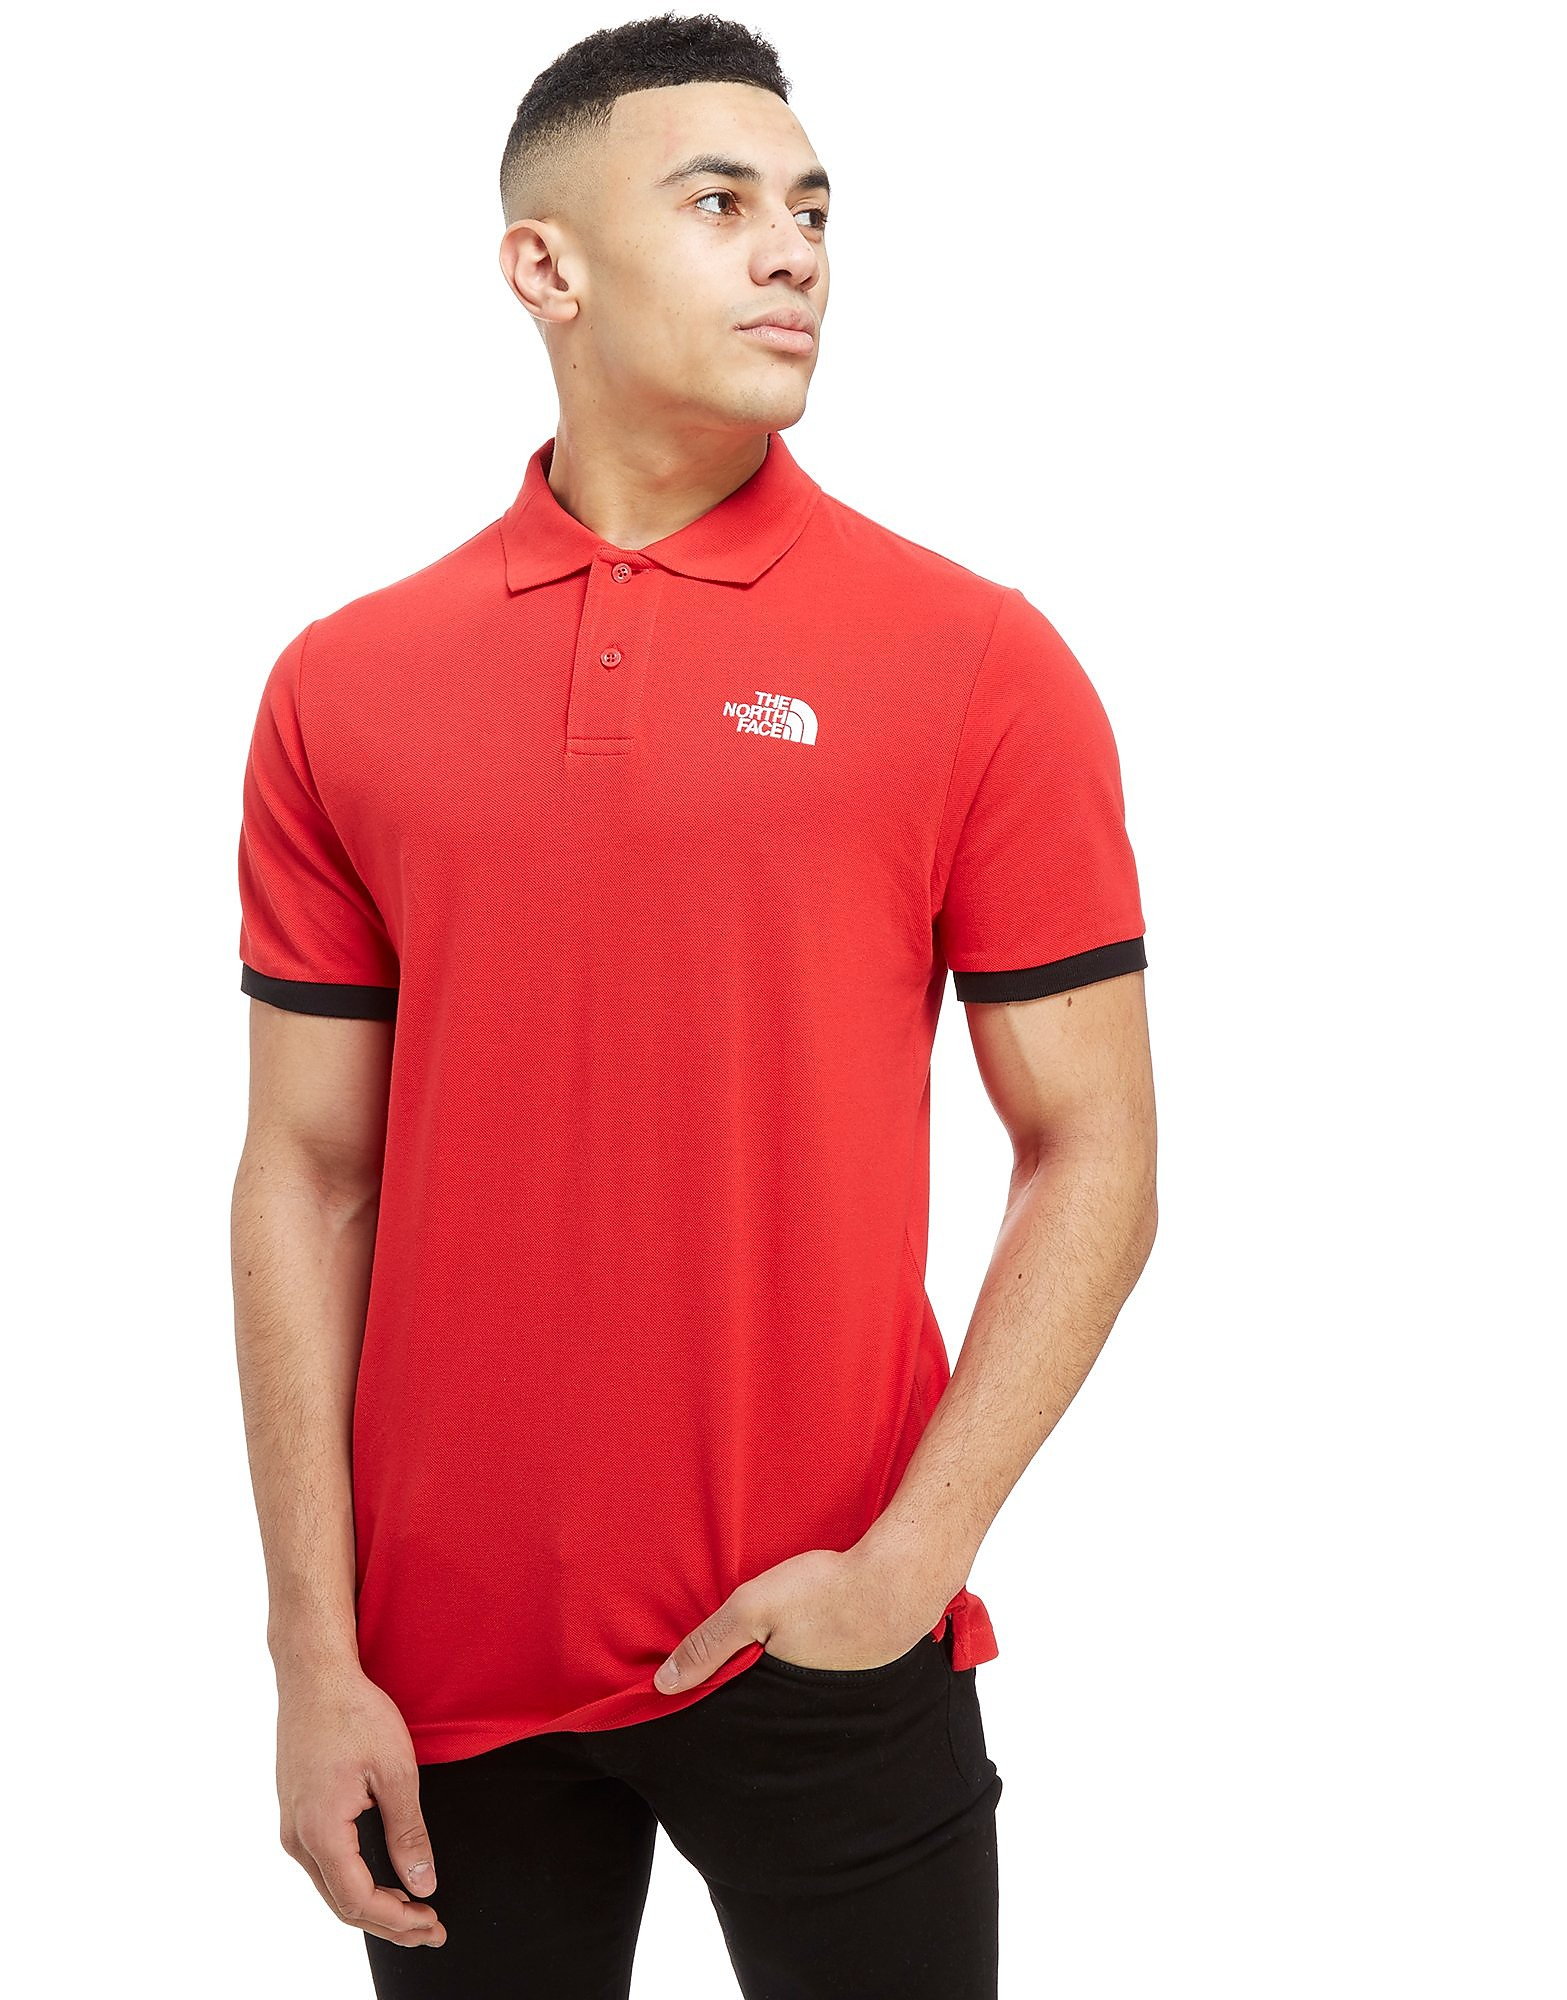 The North Face Core Short Sleeve Polo Shirt